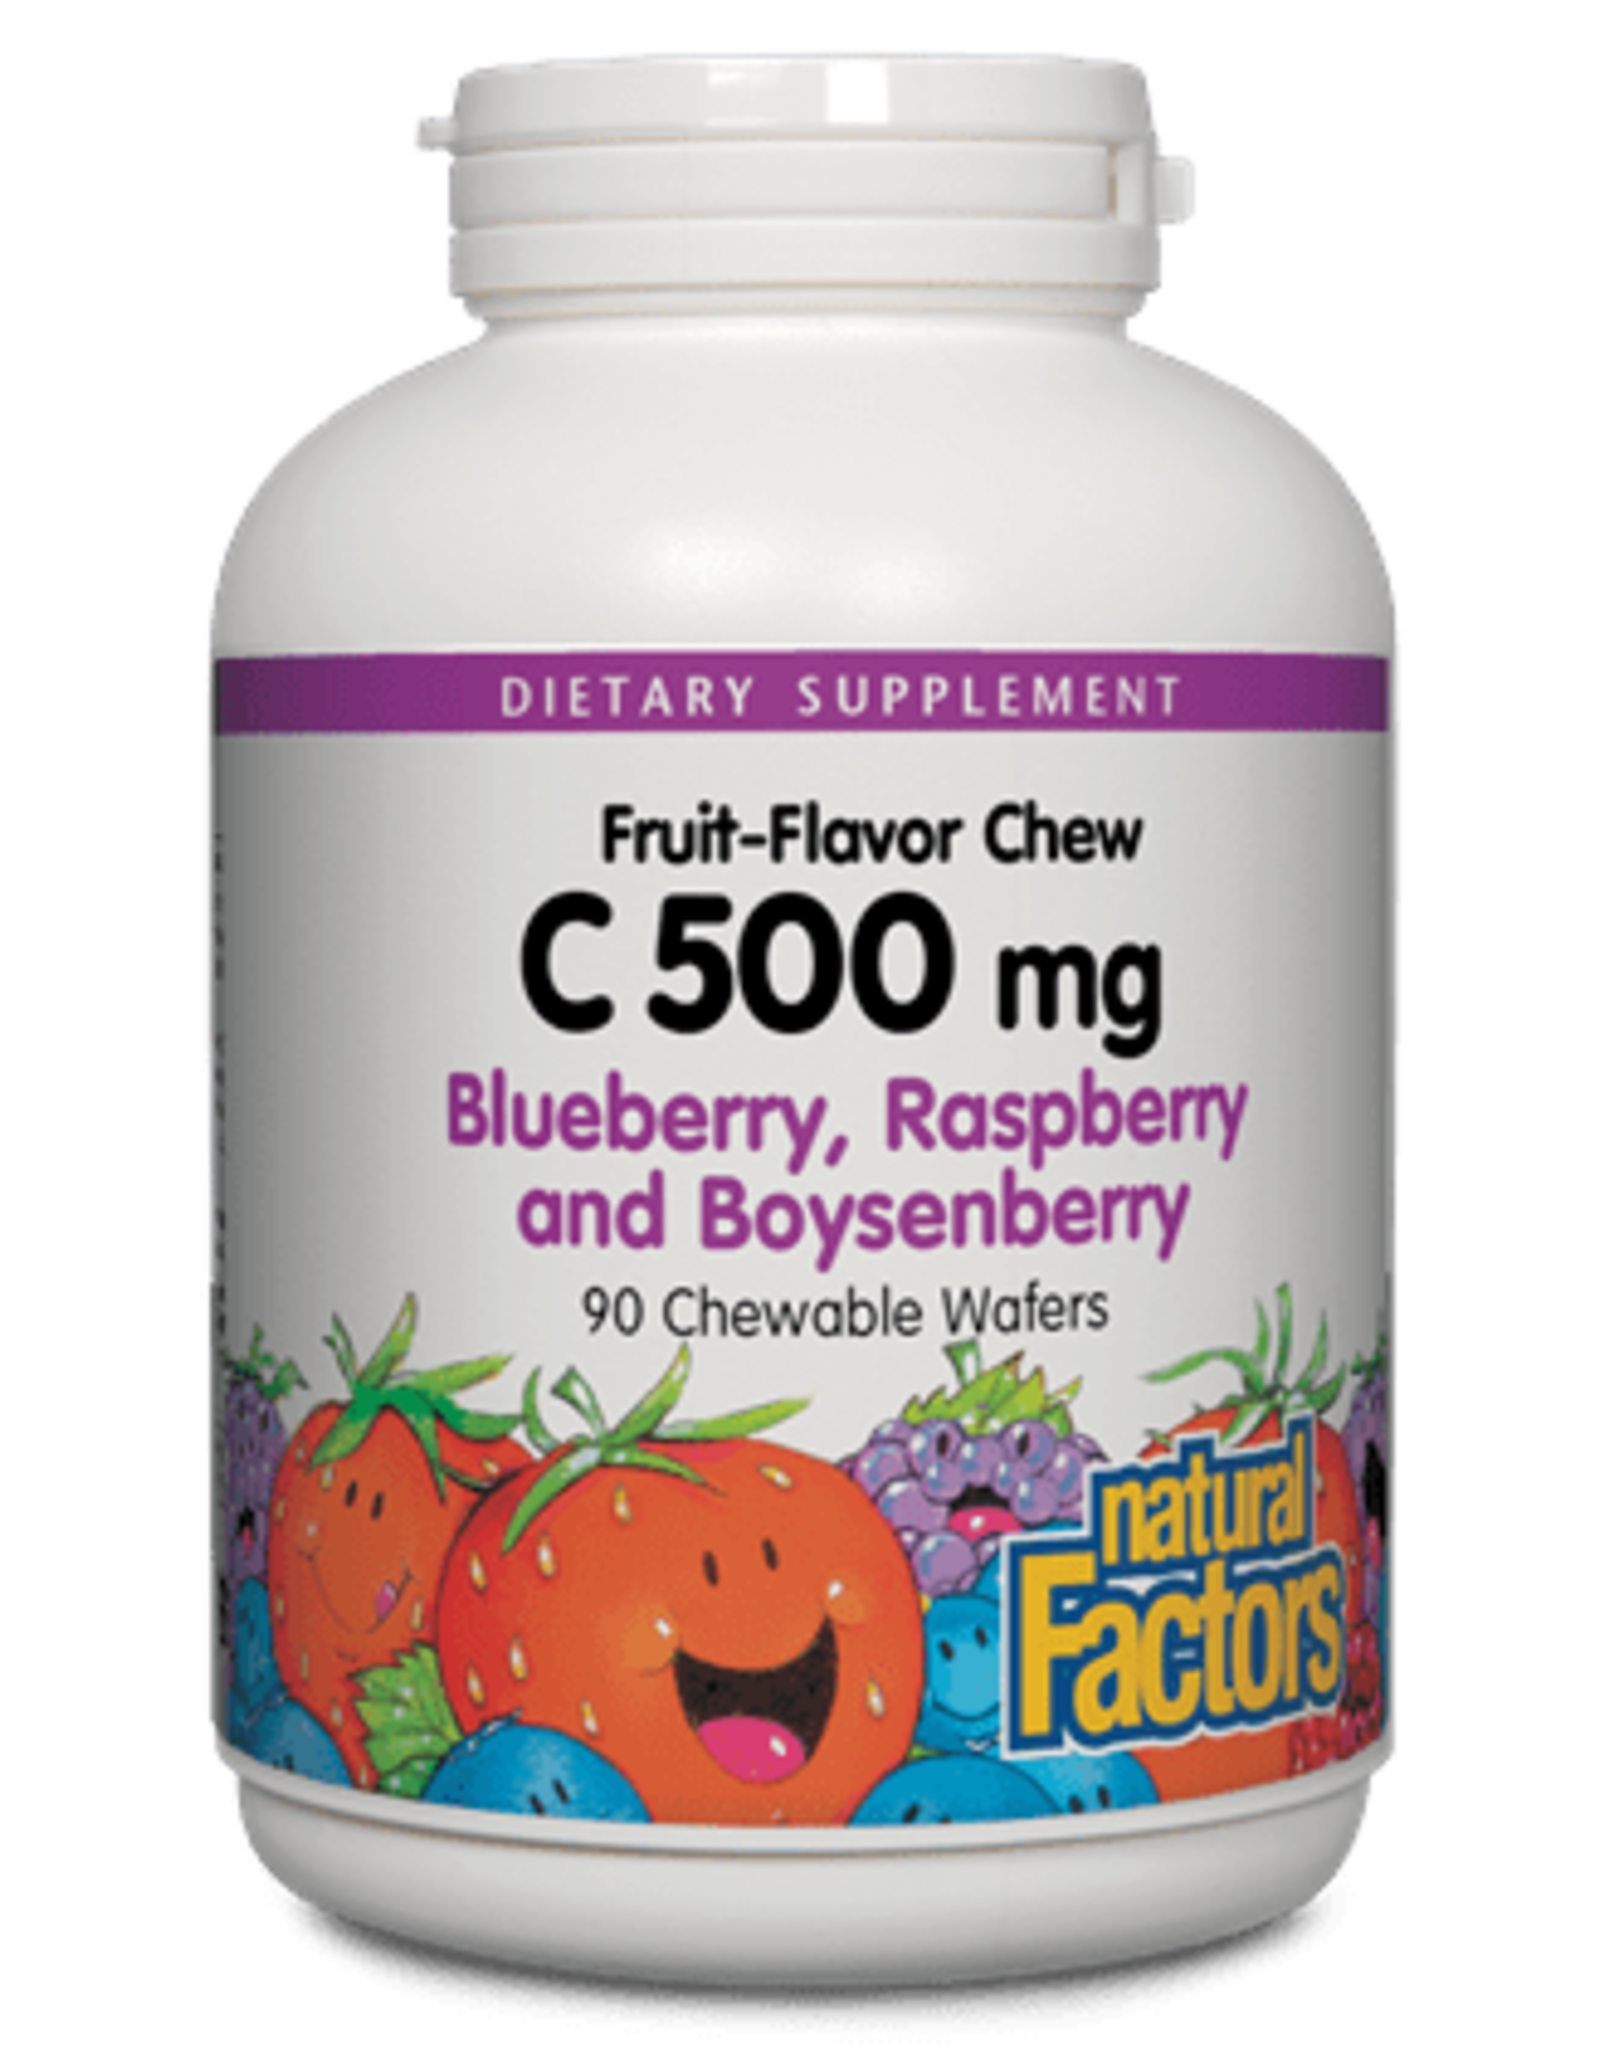 Natural Factors Vit C 500 mg Natural Fruit Chews Blueberry, Raspberry & Boysenberry 90/TAB